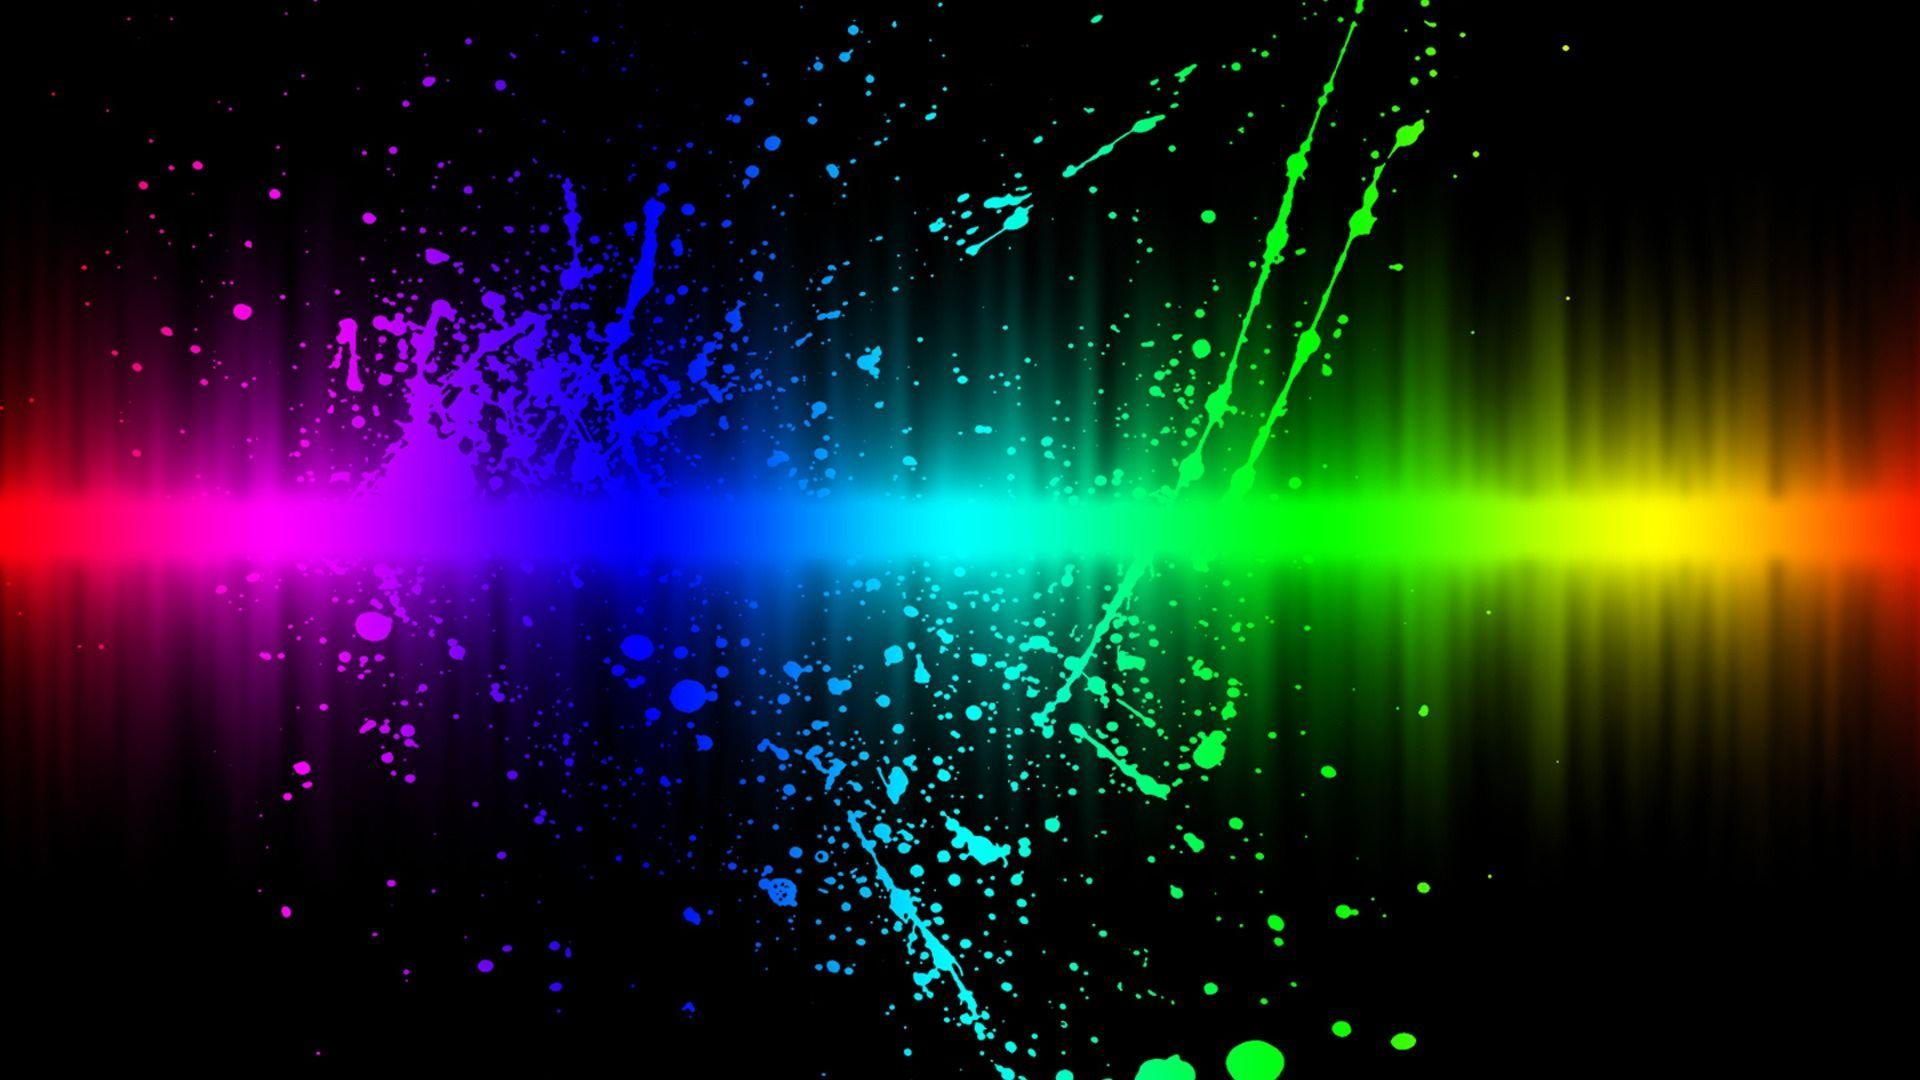 cool colorful music wallpapers - photo #27